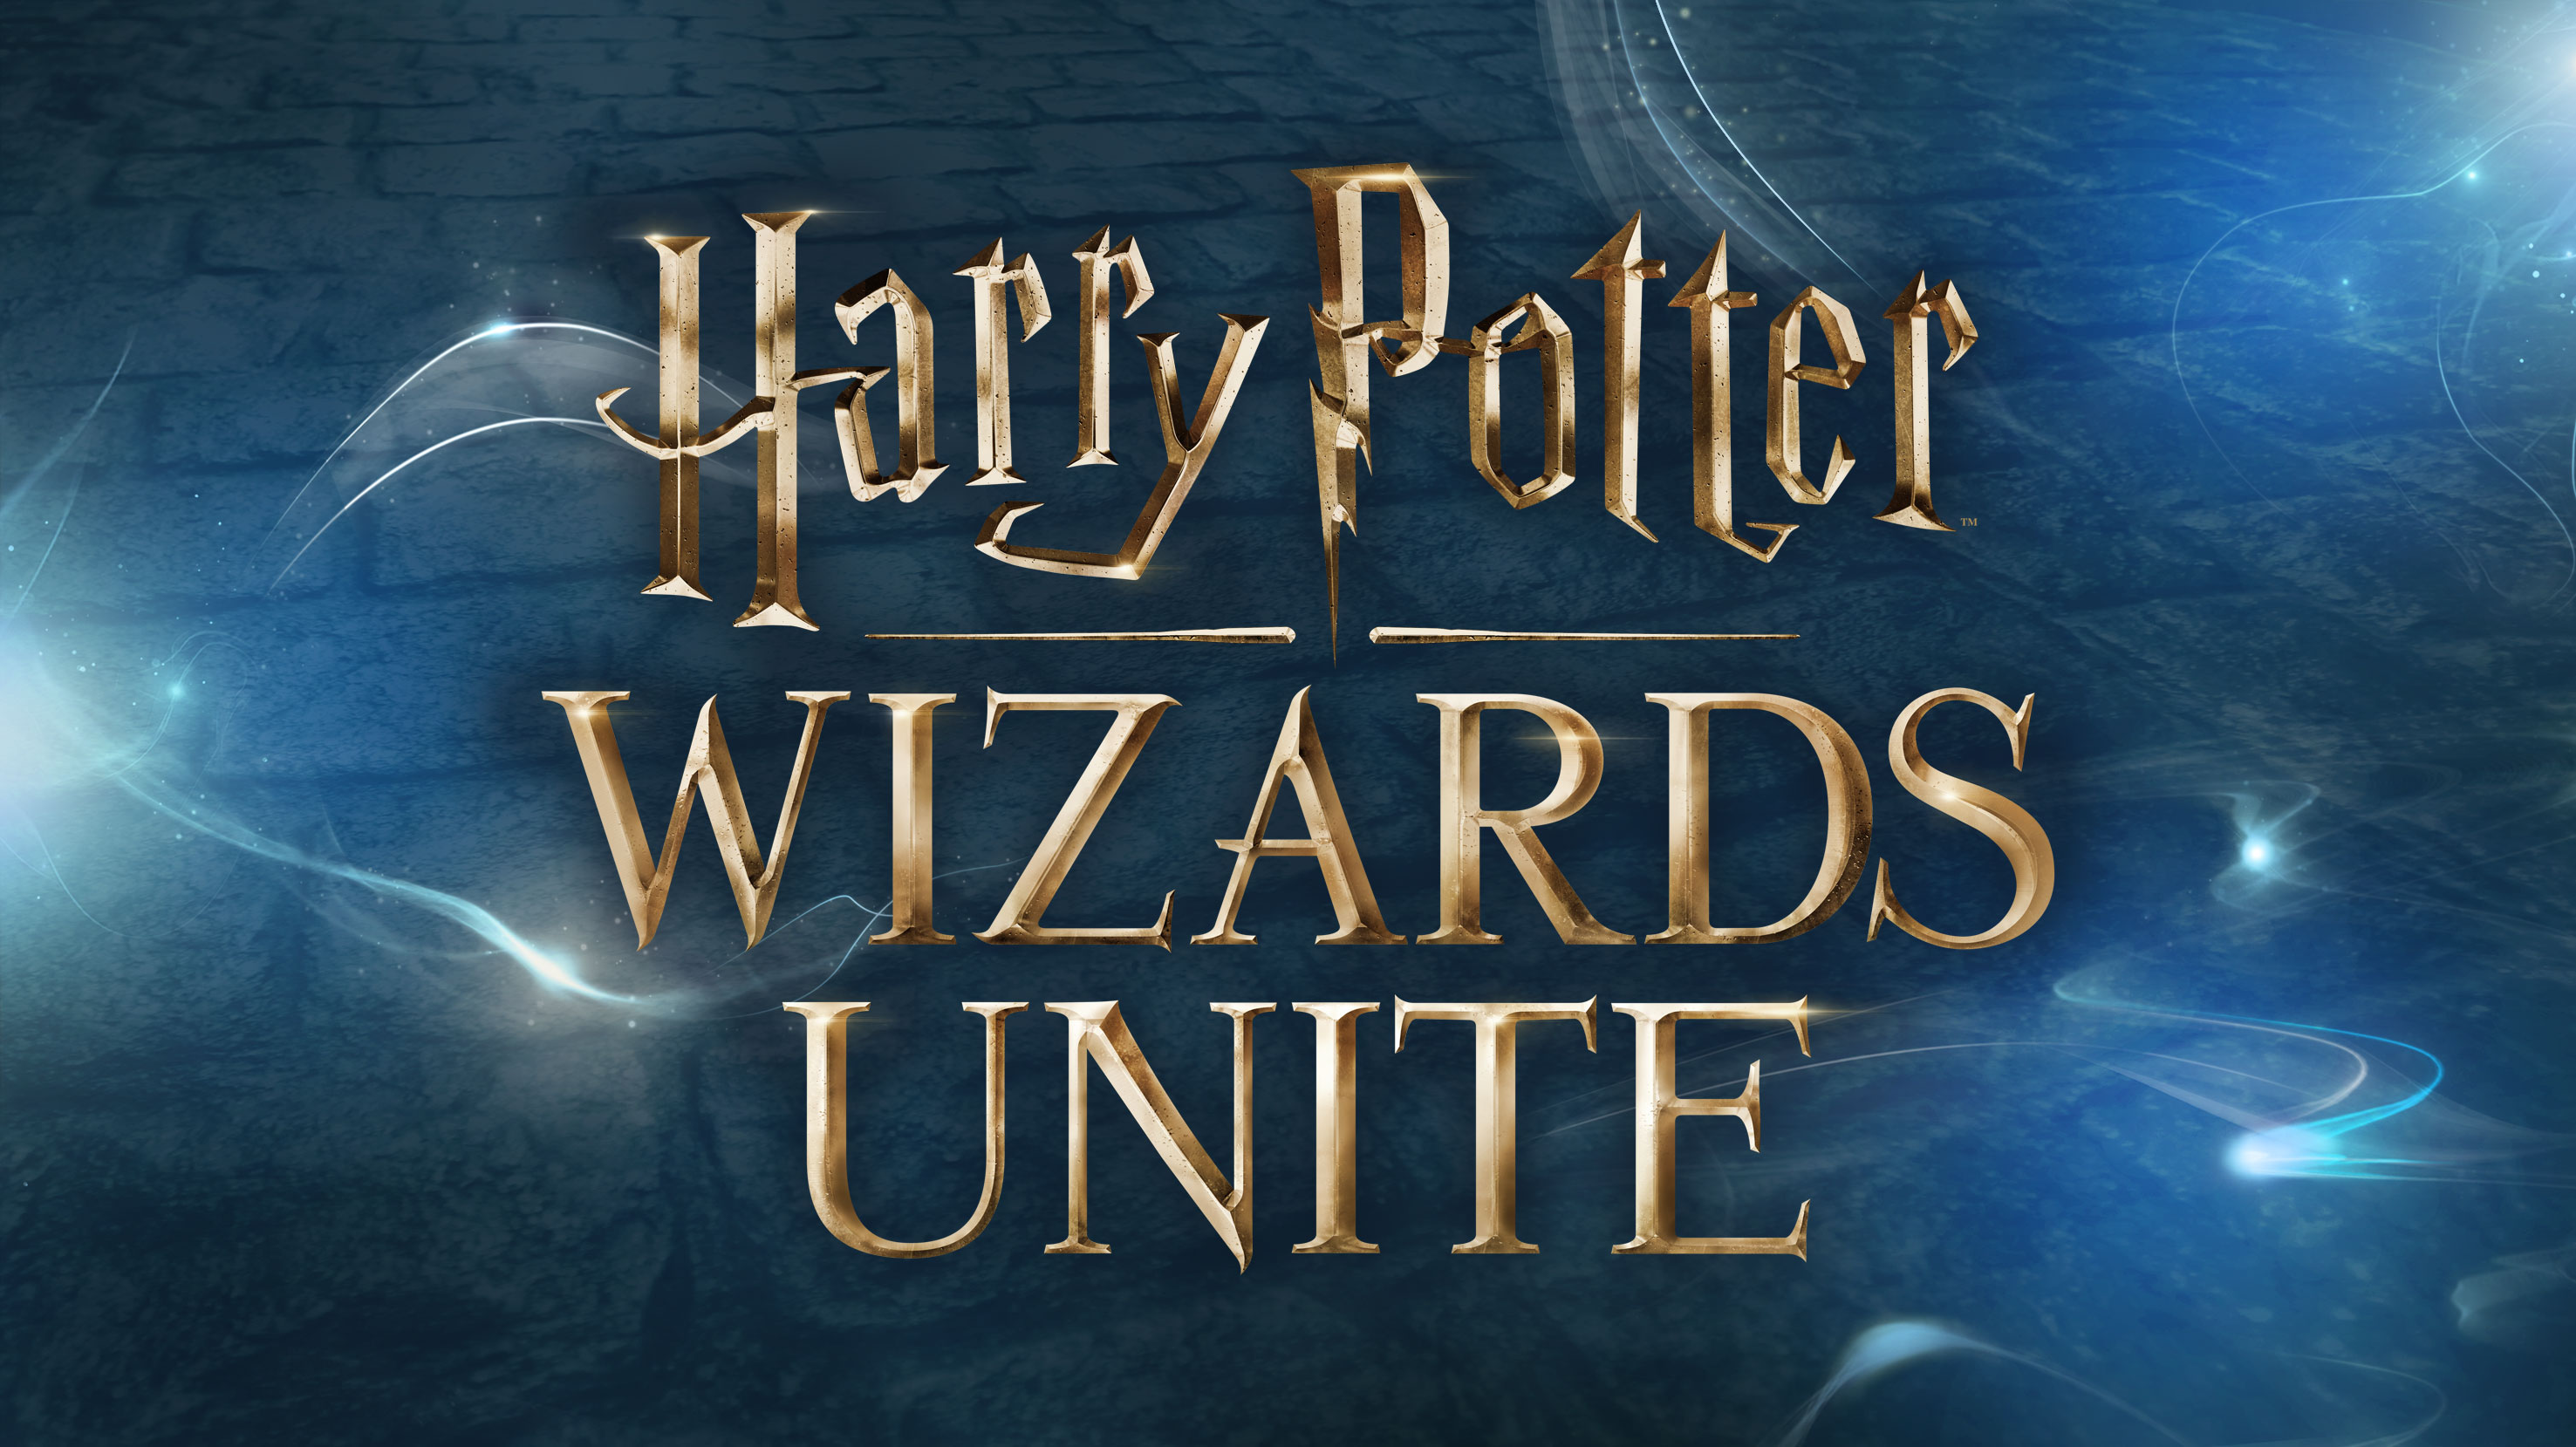 Harry Potter: Wizards Unite Trailer Revealed by Niantic